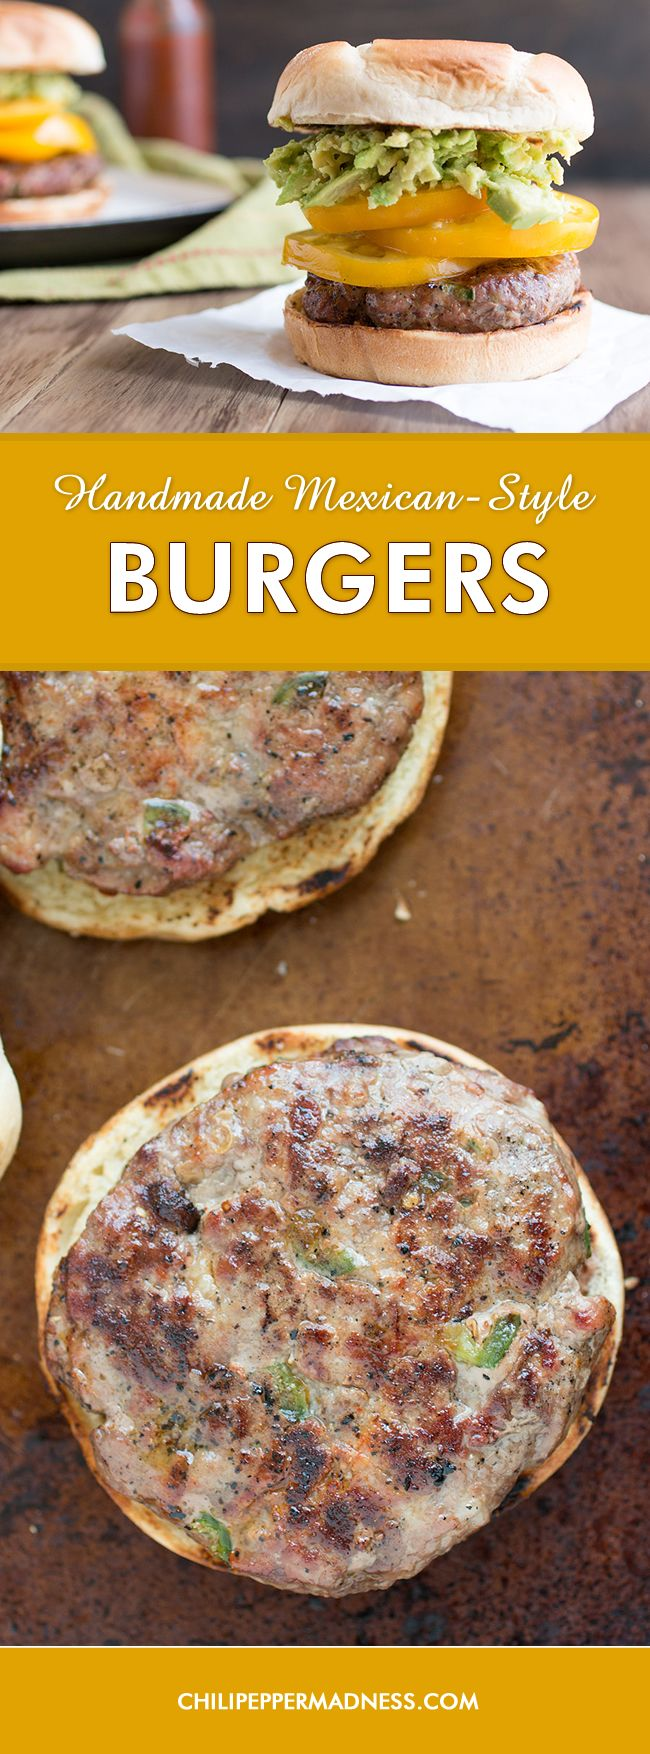 Handmade Mexican-Style Burgers - A recipe for juicy burgers made from scratch with ground pork, ground beef, jalapeno and serrano peppers, and plenty of seasonings. Completely handmade. Fire up the grill and get cooking!